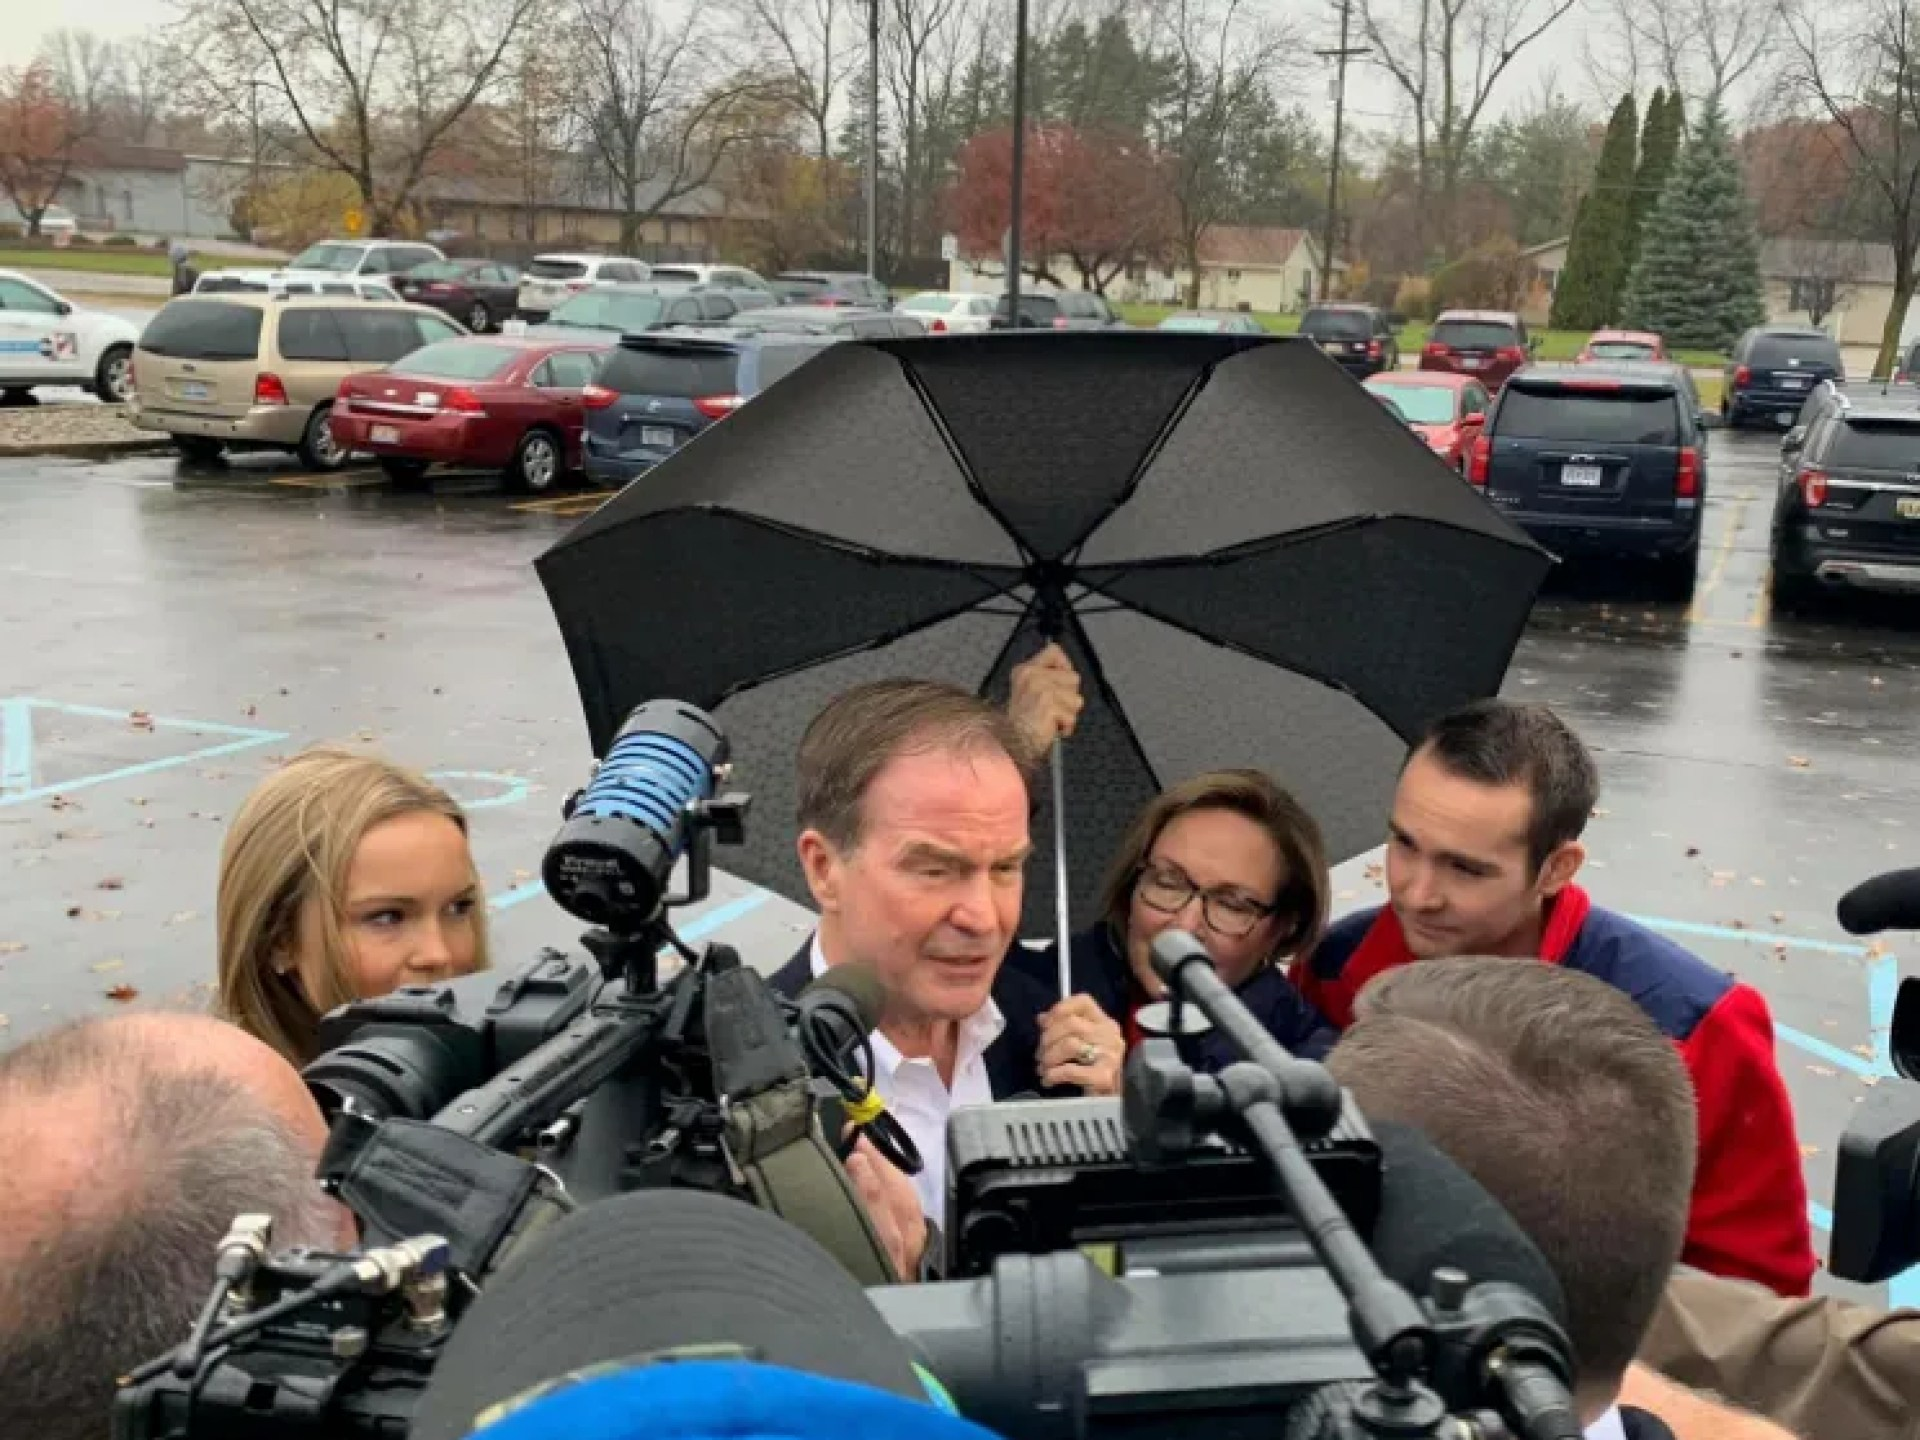 Republican gubernatorial candidate Bill Schuette arrives at his polling station in Midland, Michigan Tuesday surrounded by reporters.